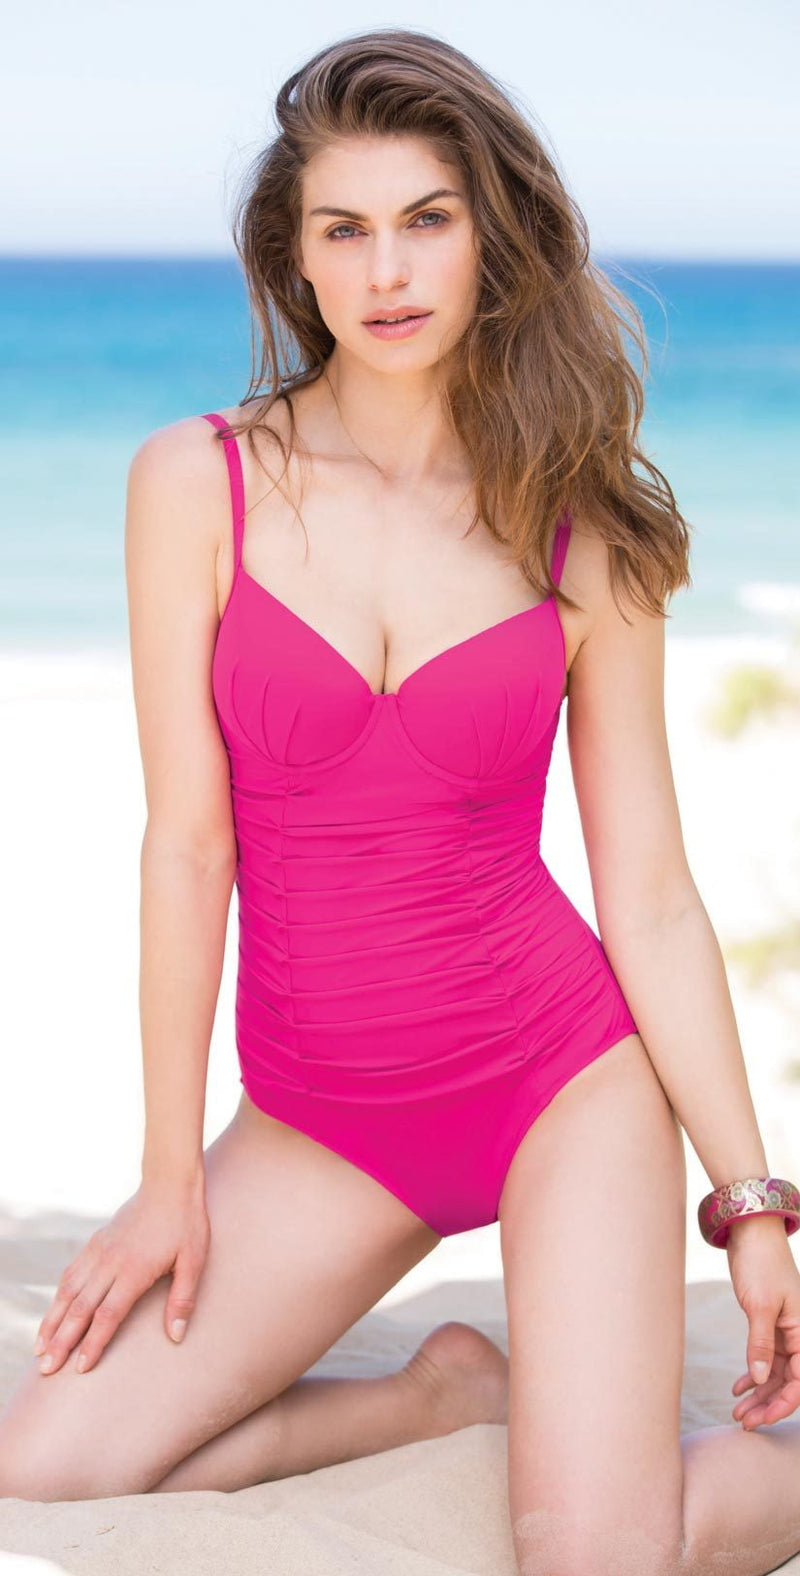 Profile by Gottex Origami Underwire One Piece in Pink E844-2056-651: